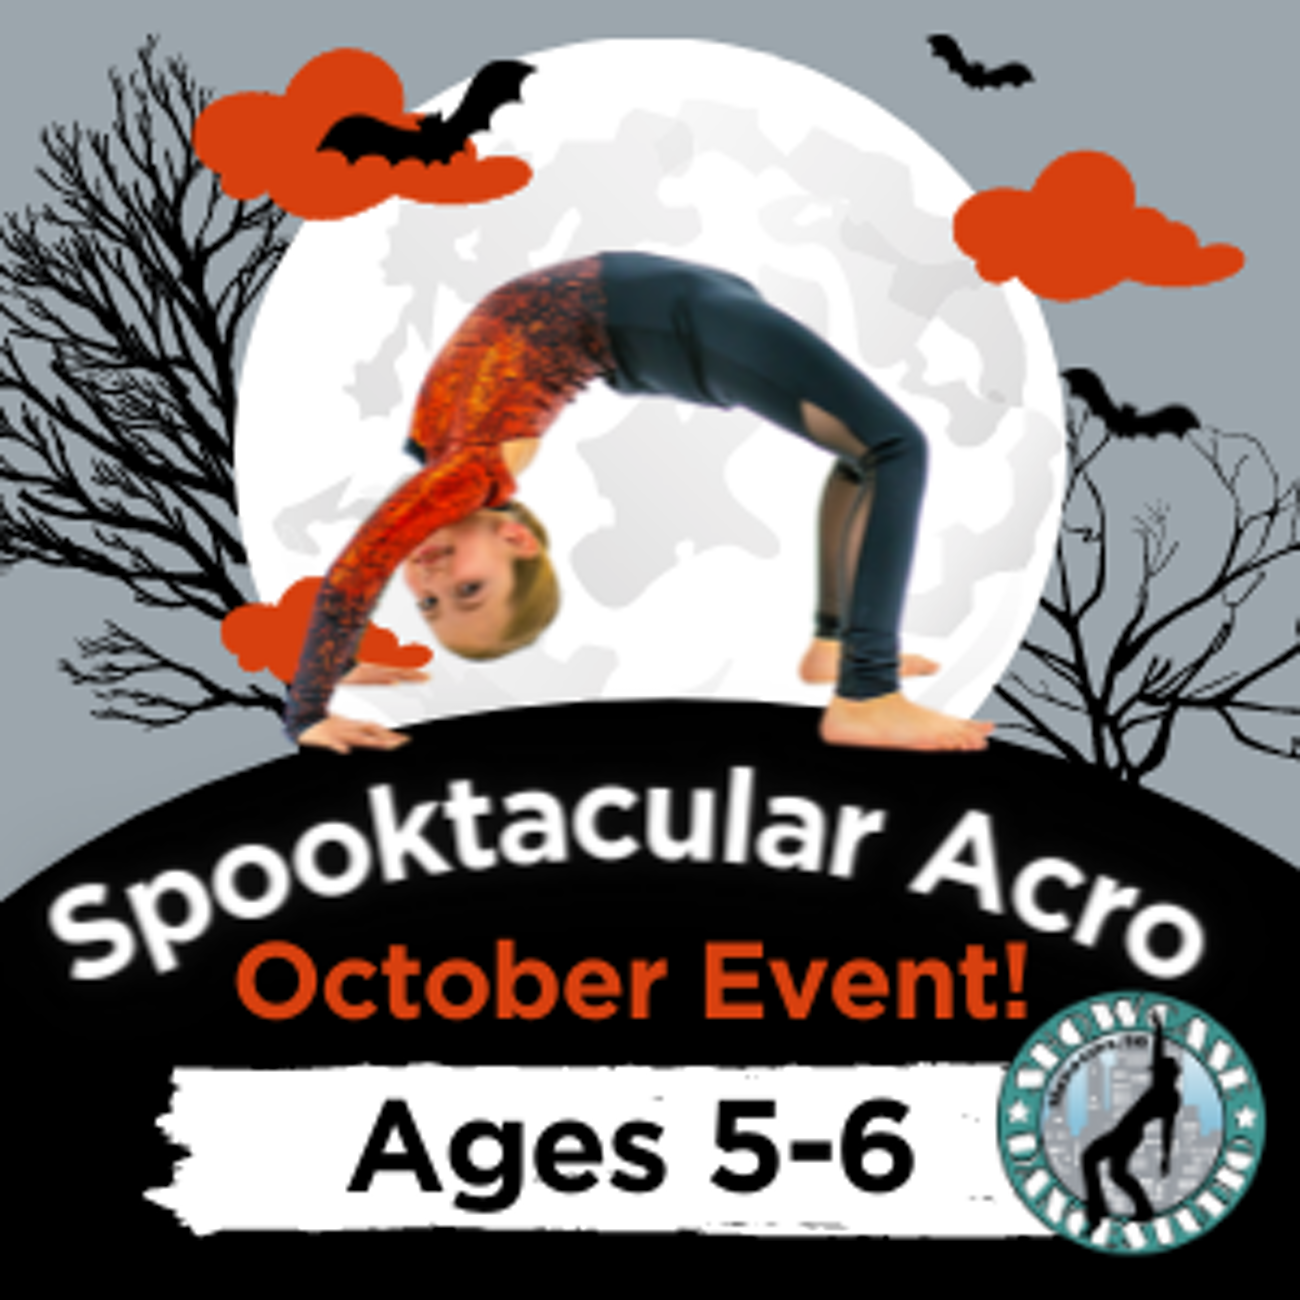 Spooktacular Acro October 19th & 26th Event!